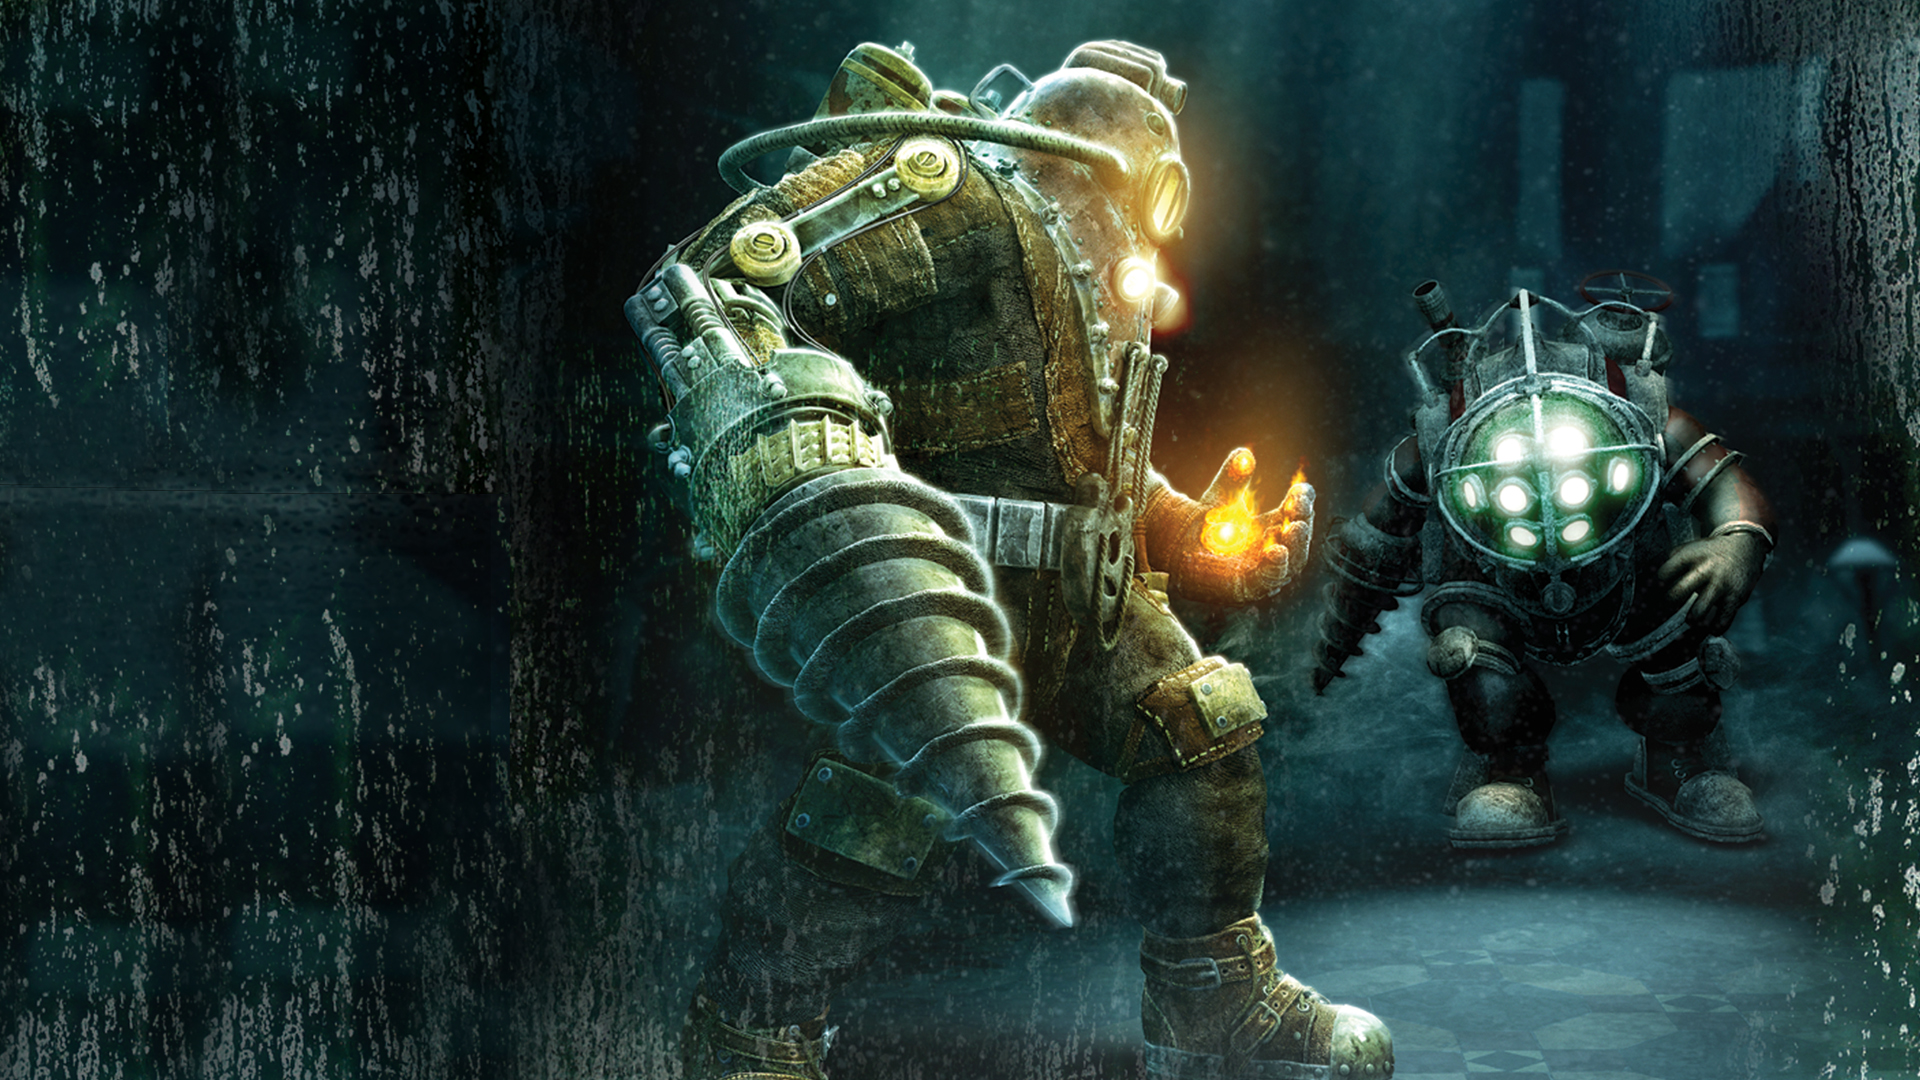 bioshock wallpaper 4255